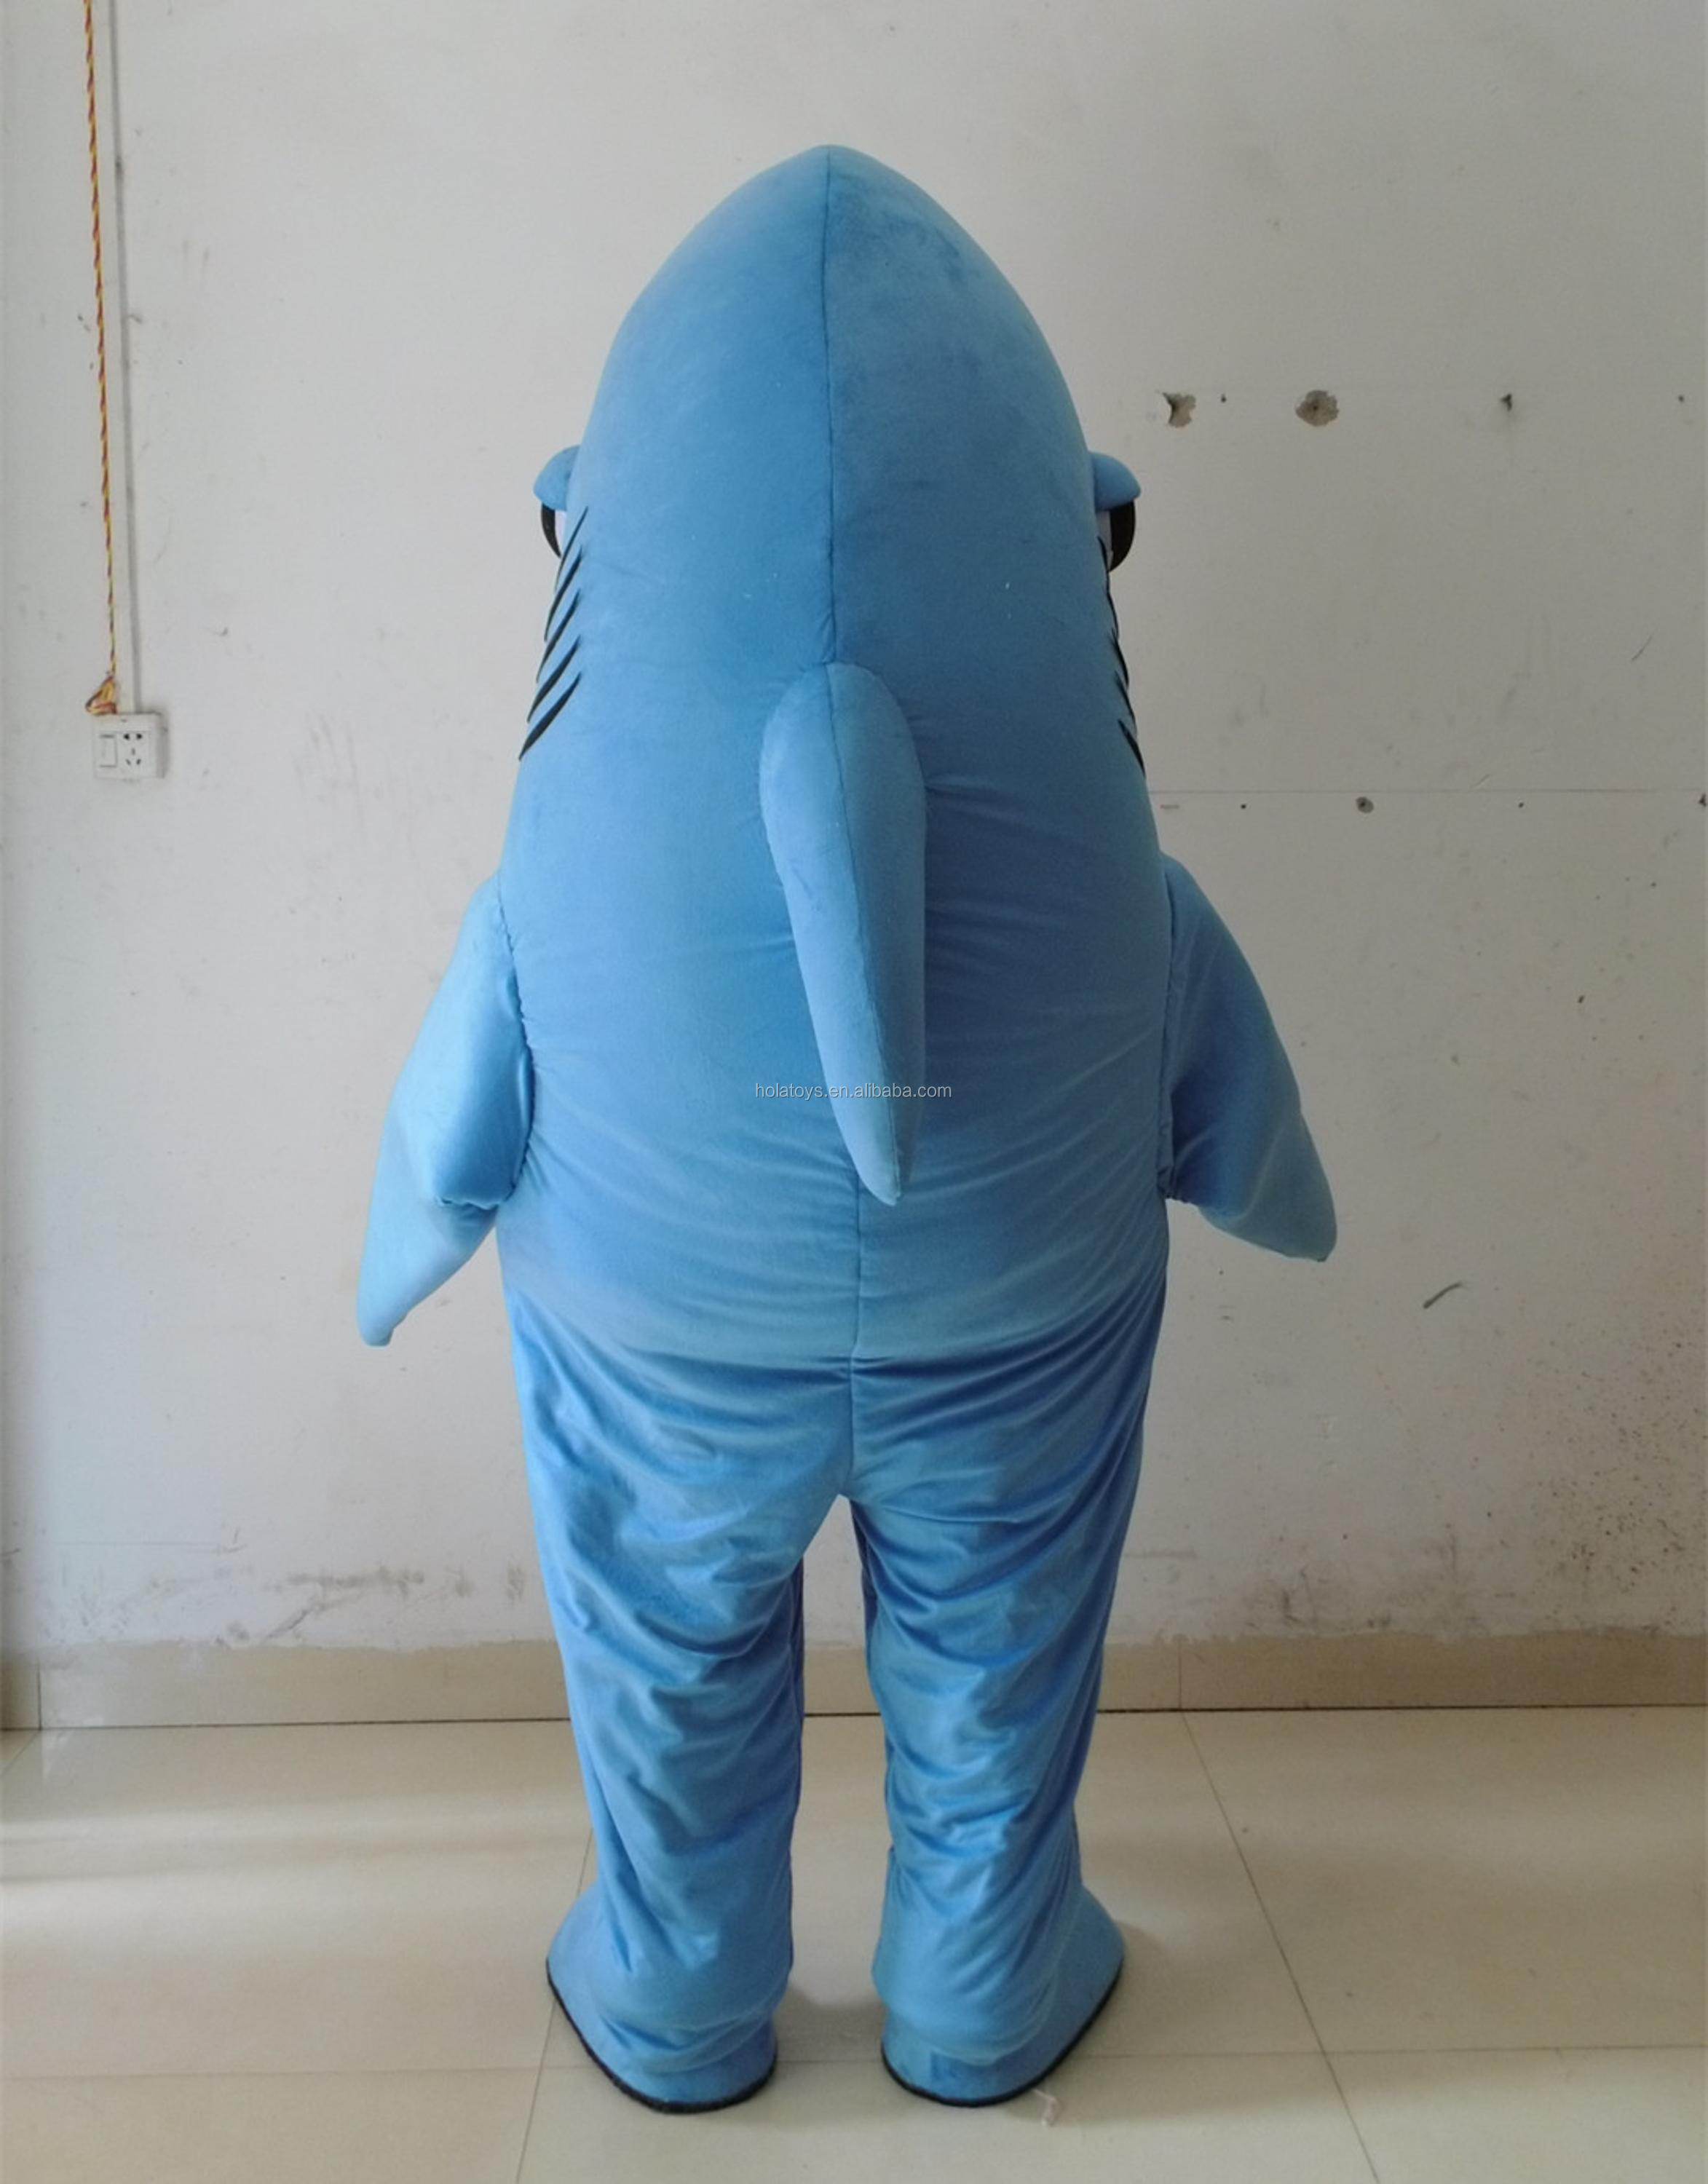 OEM hedgehog costume/funny hedgehog mascot costume for sale